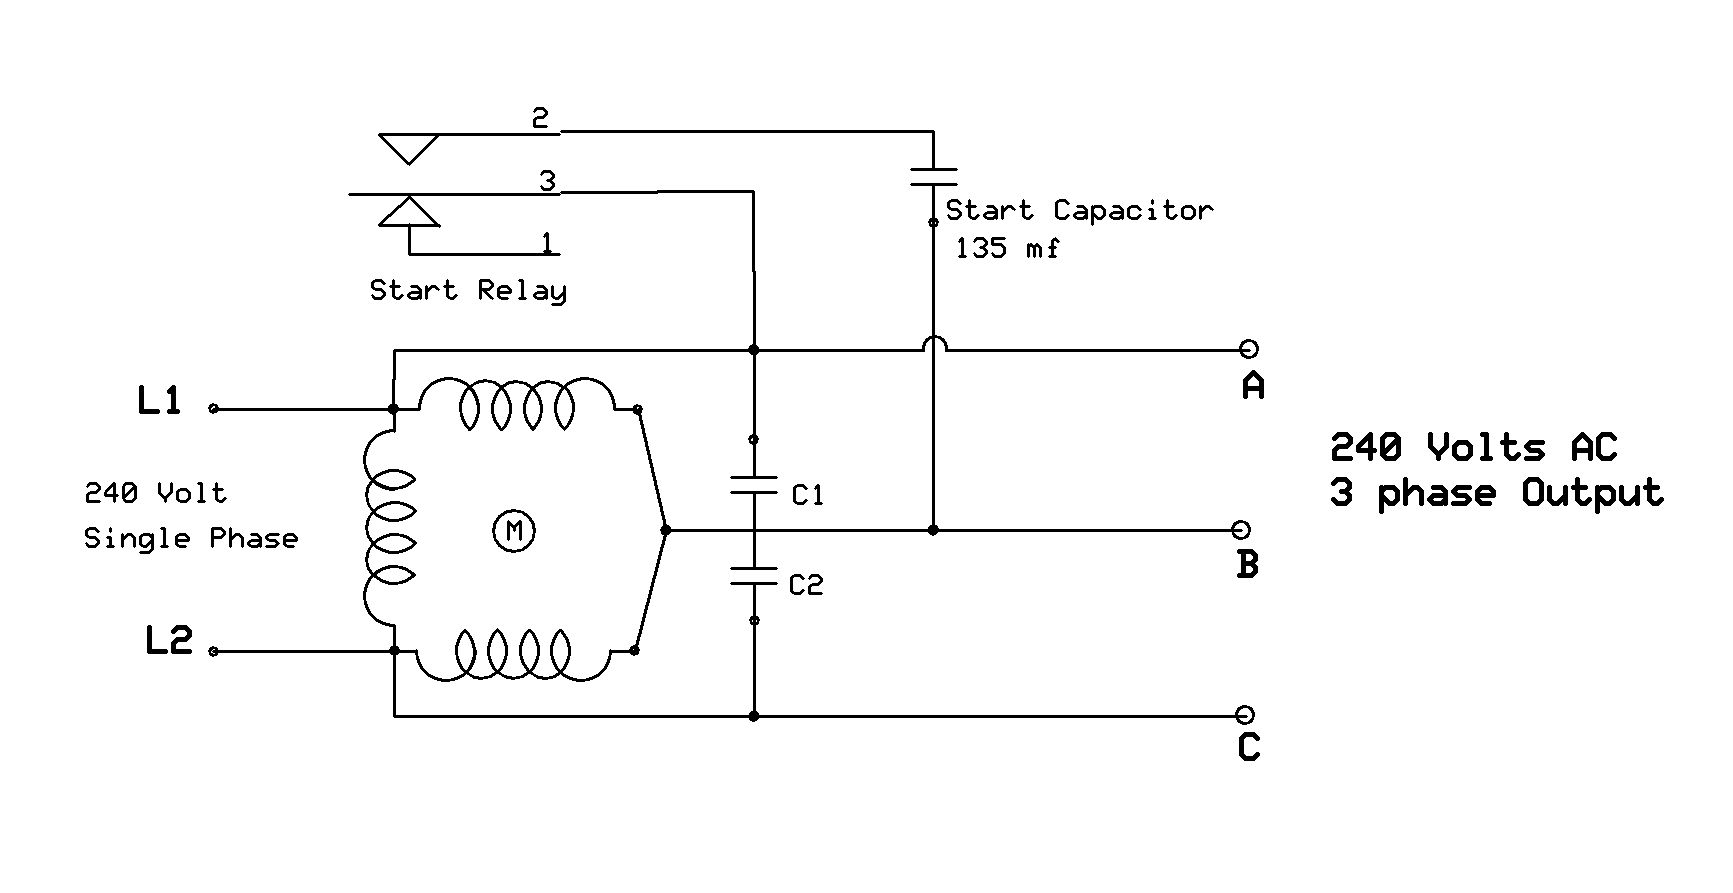 hight resolution of 240 volt 2 phase wiring diagram wiring diagram blog single phase motor connection diagram 240v single